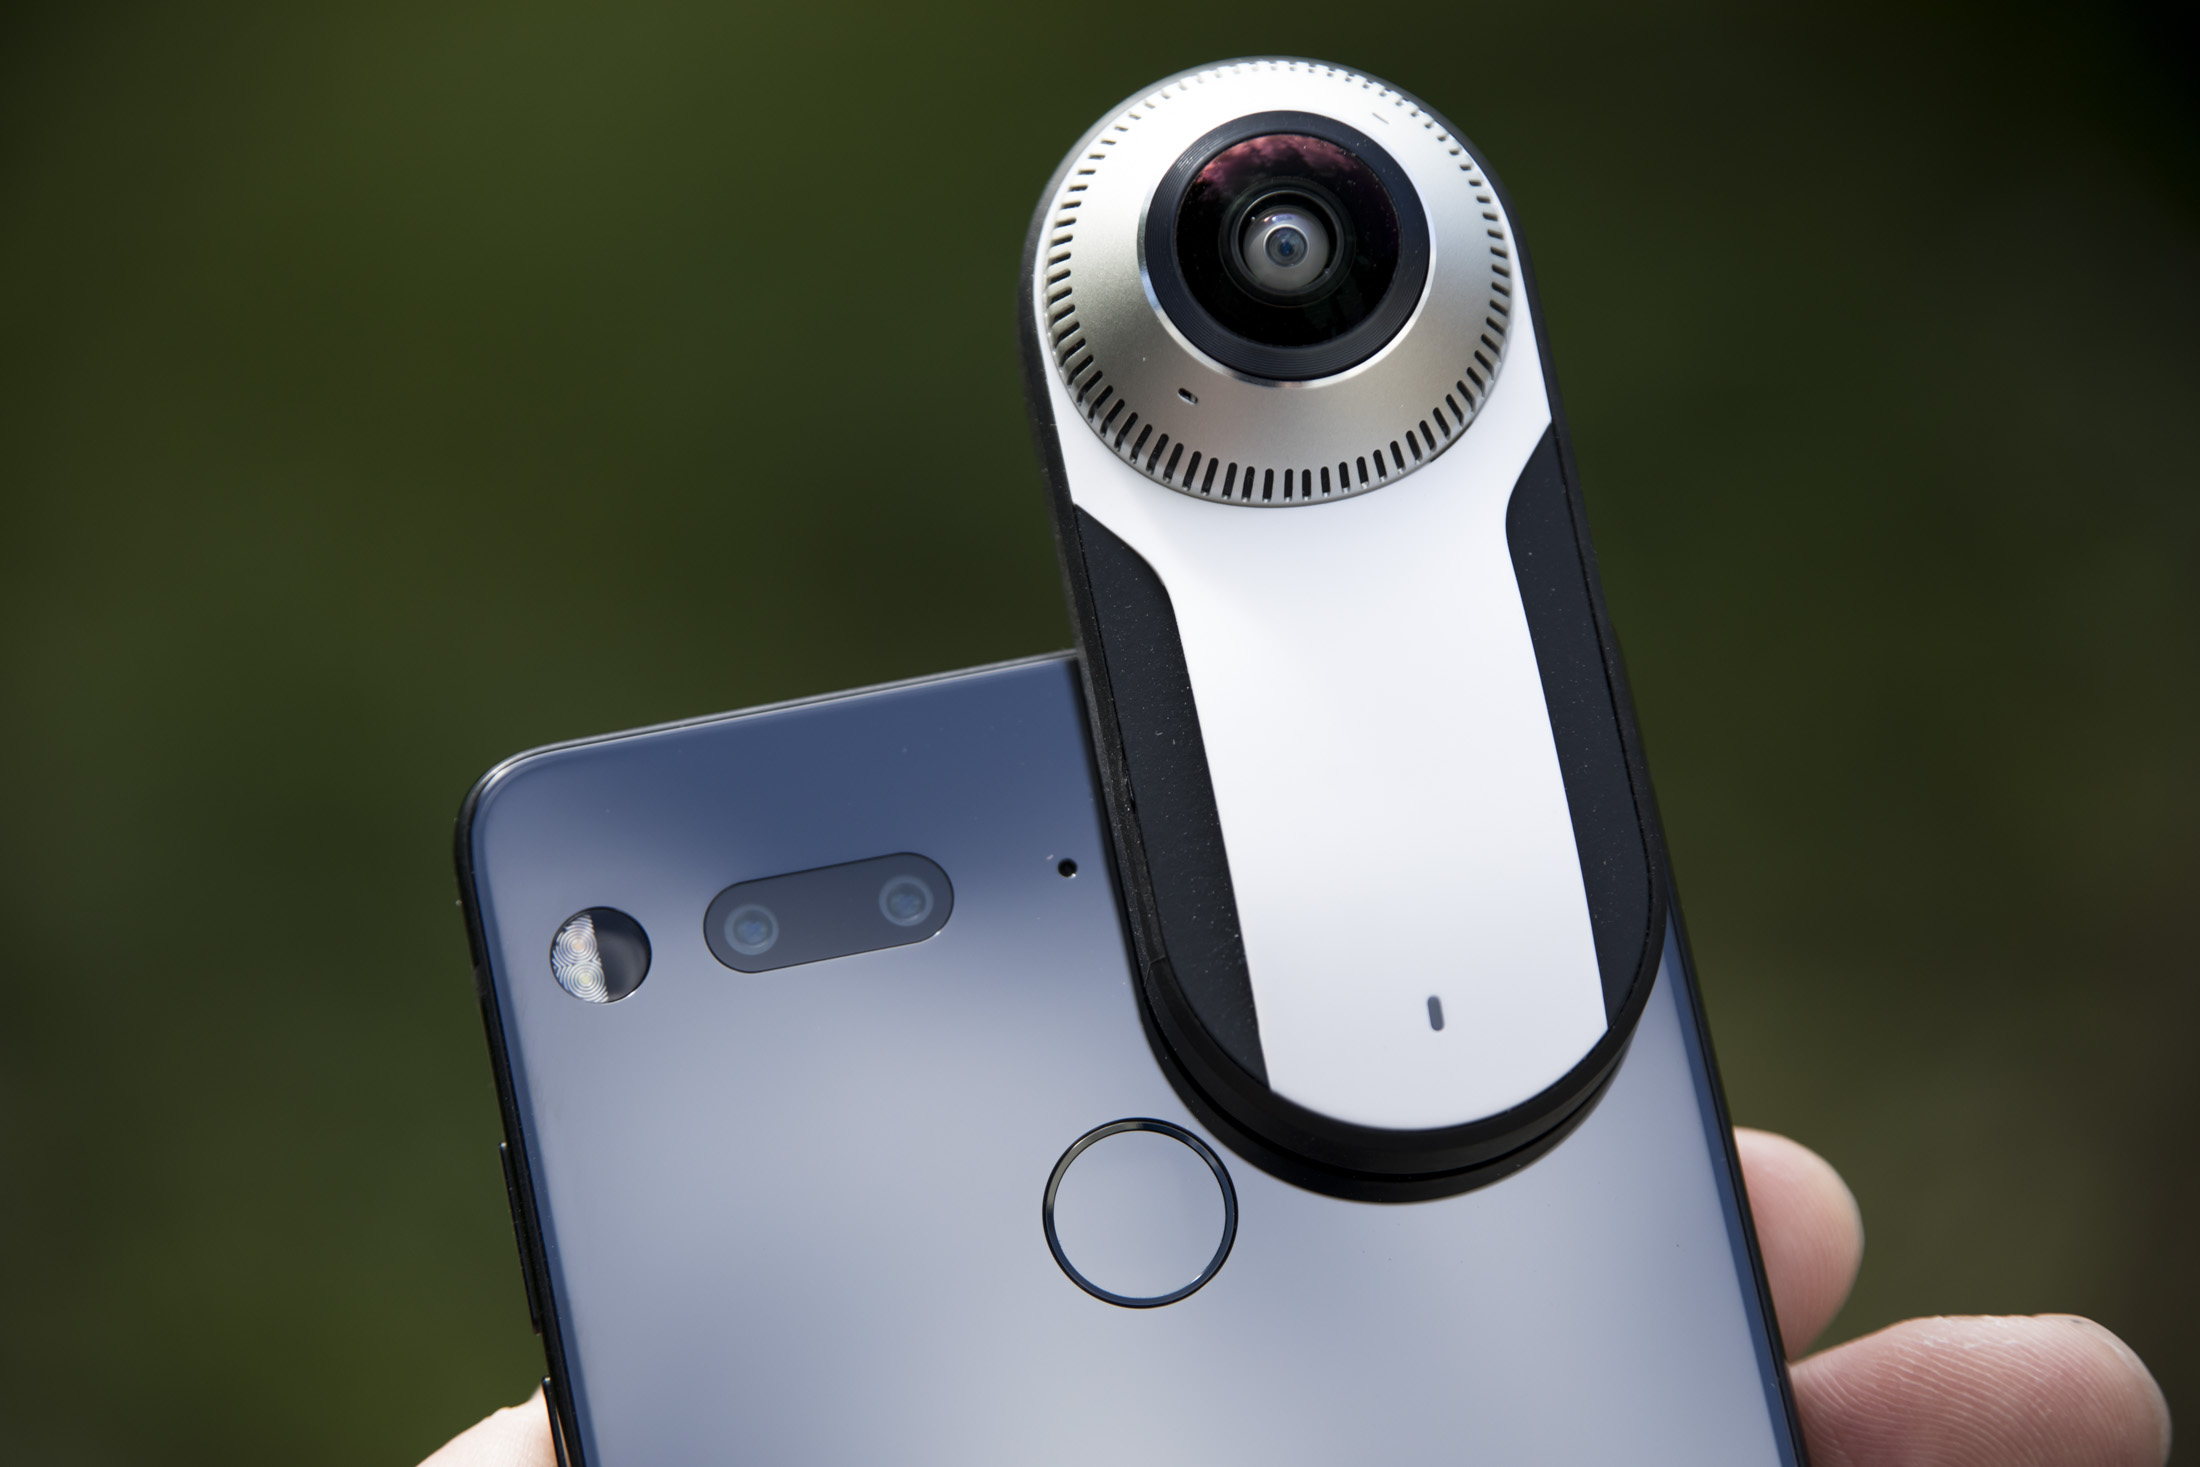 Essential Phone can now stream live to Facebook from the 360 camera add-on